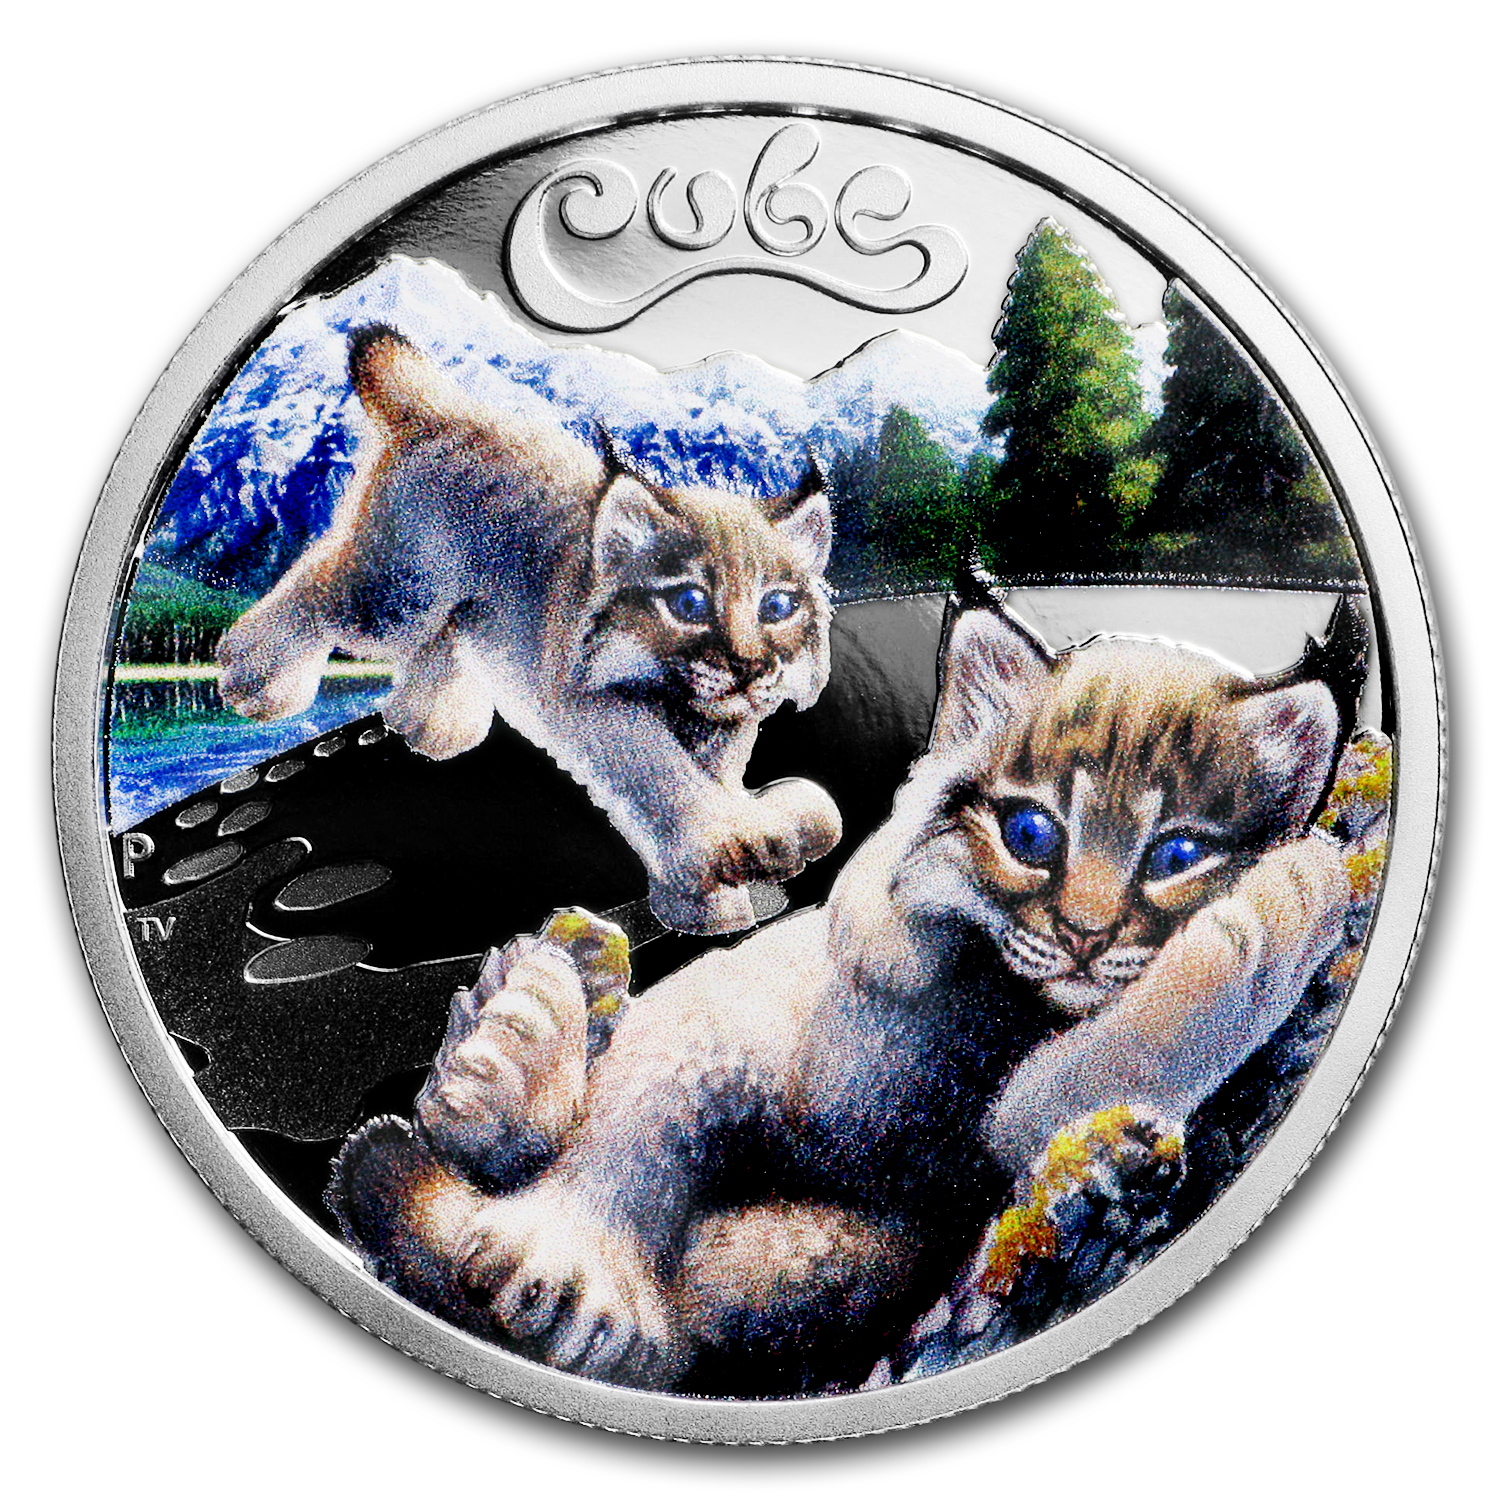 2016 Tuvalu 1/2 oz Silver Proof Snow Lynx Cubs